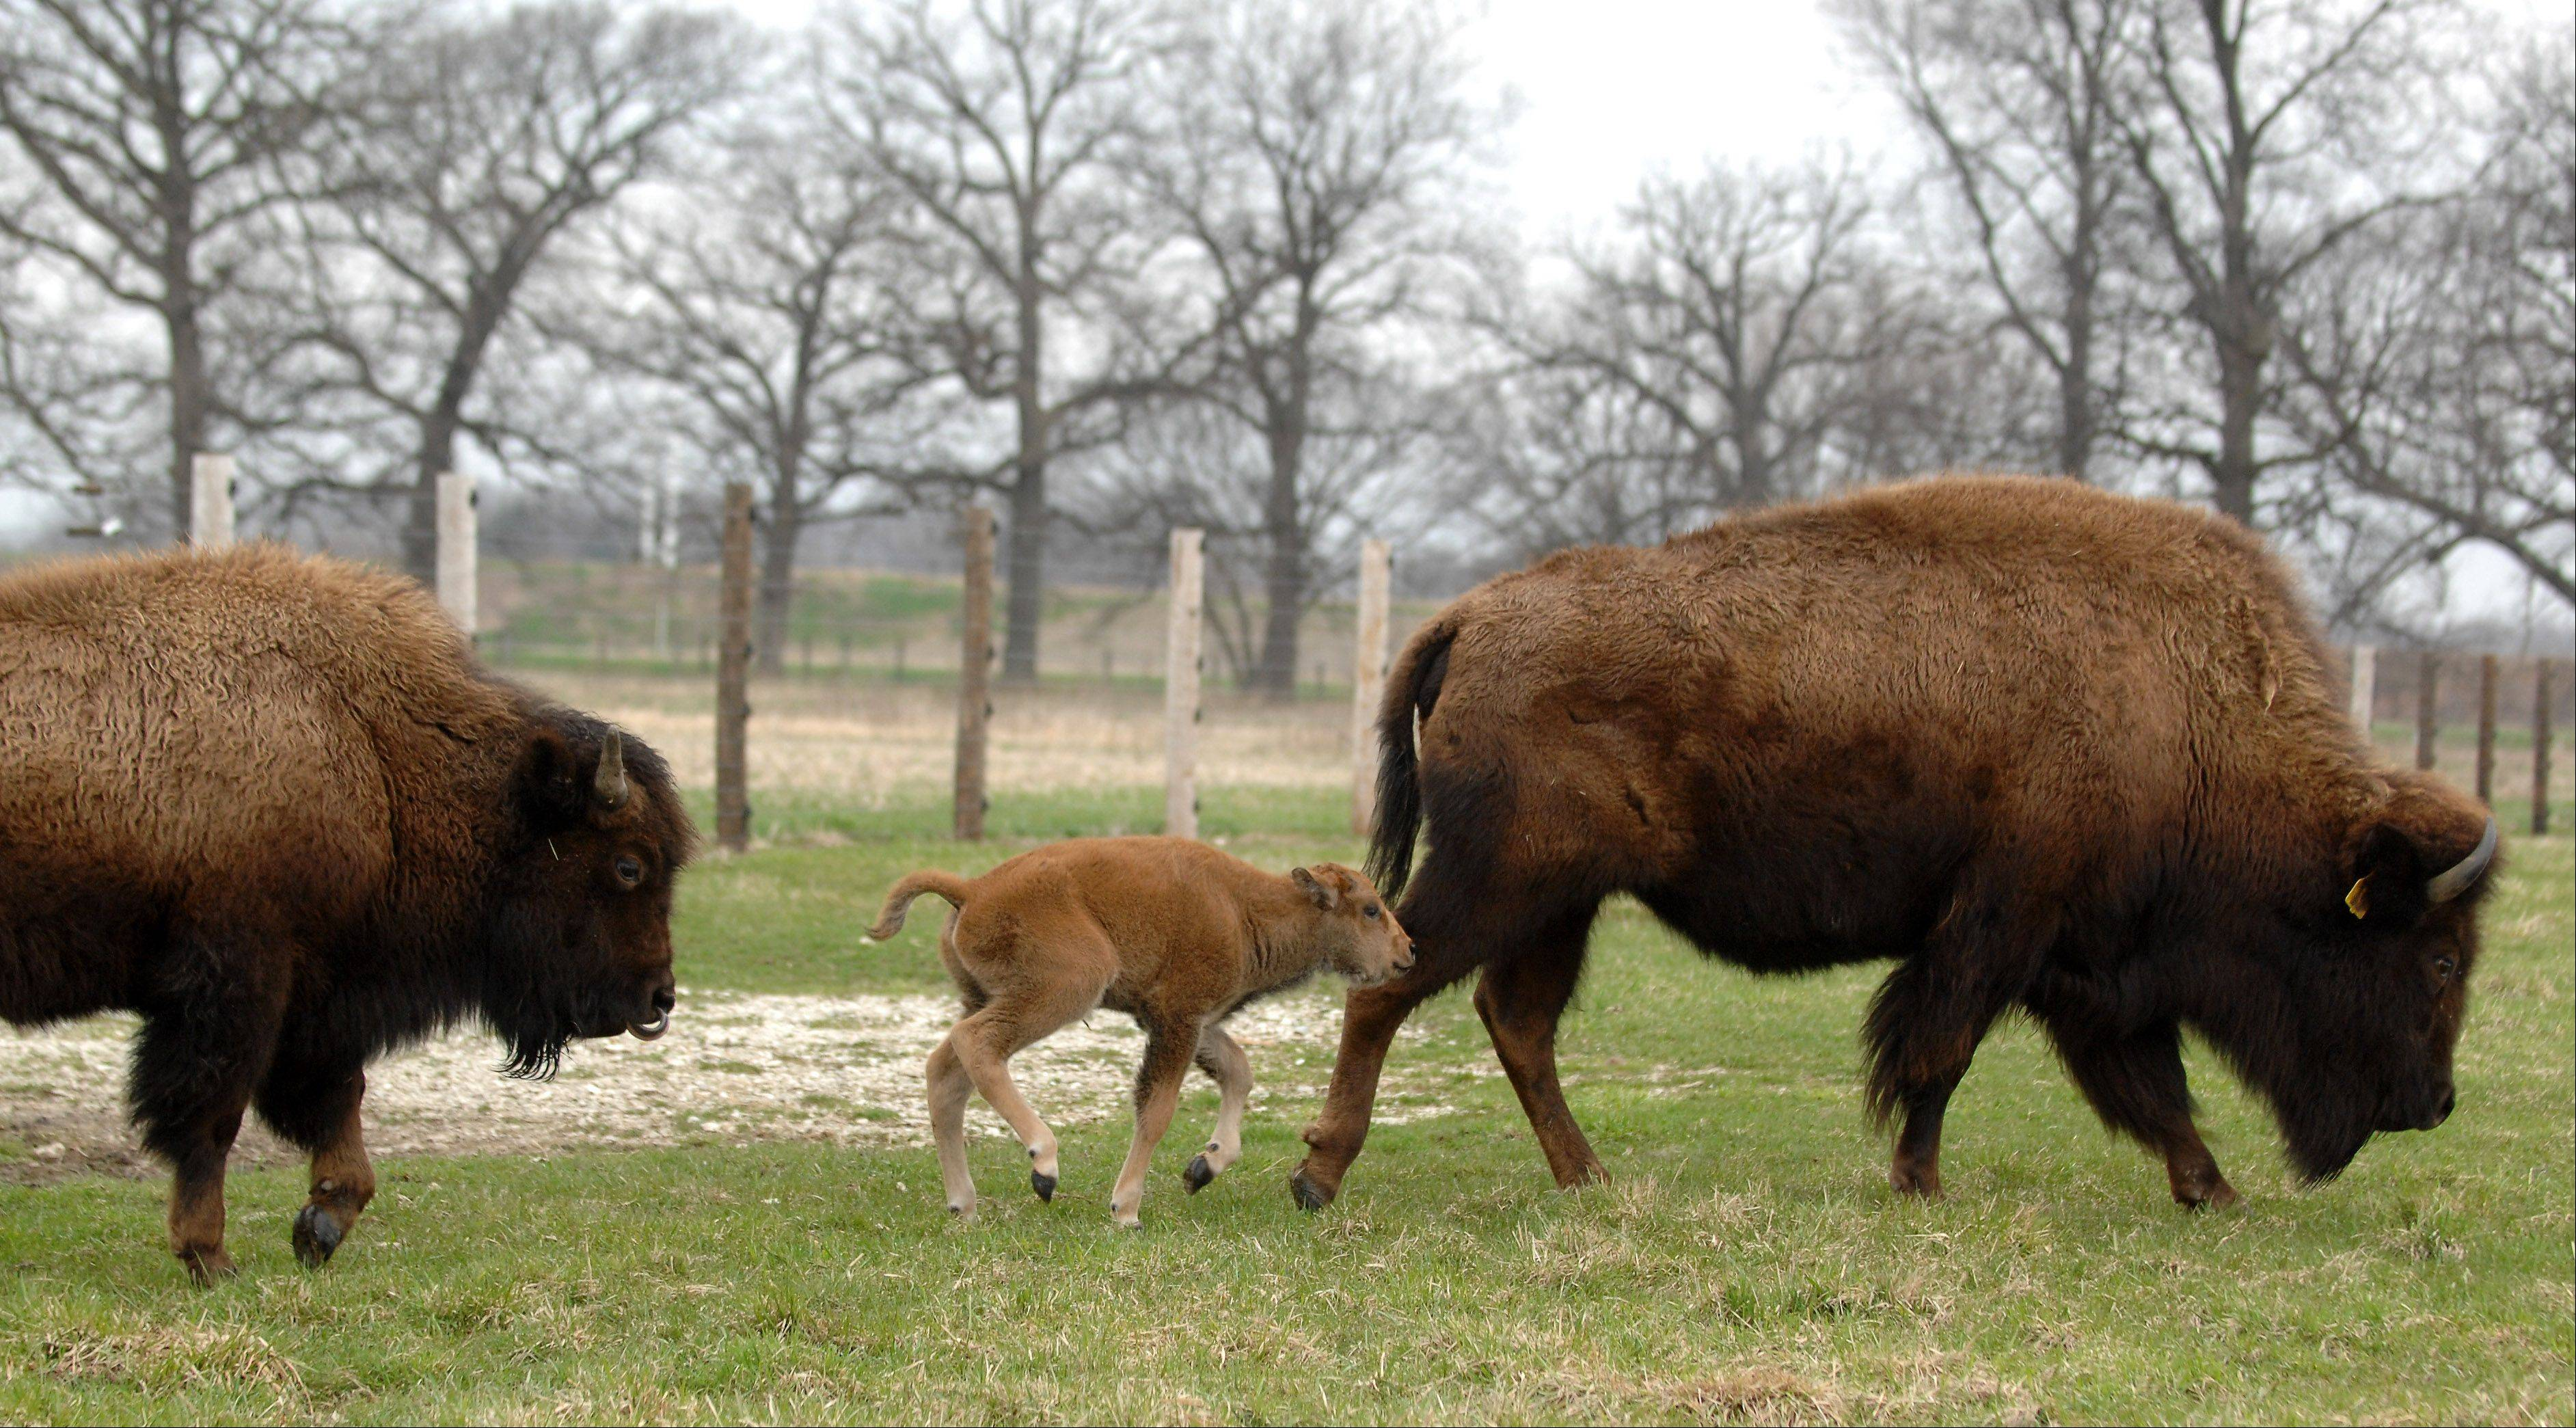 A 1-day-old bison calf follows its mother and is trailed by his 1-year-old brother at Fermilab in Batavia Tuesday.